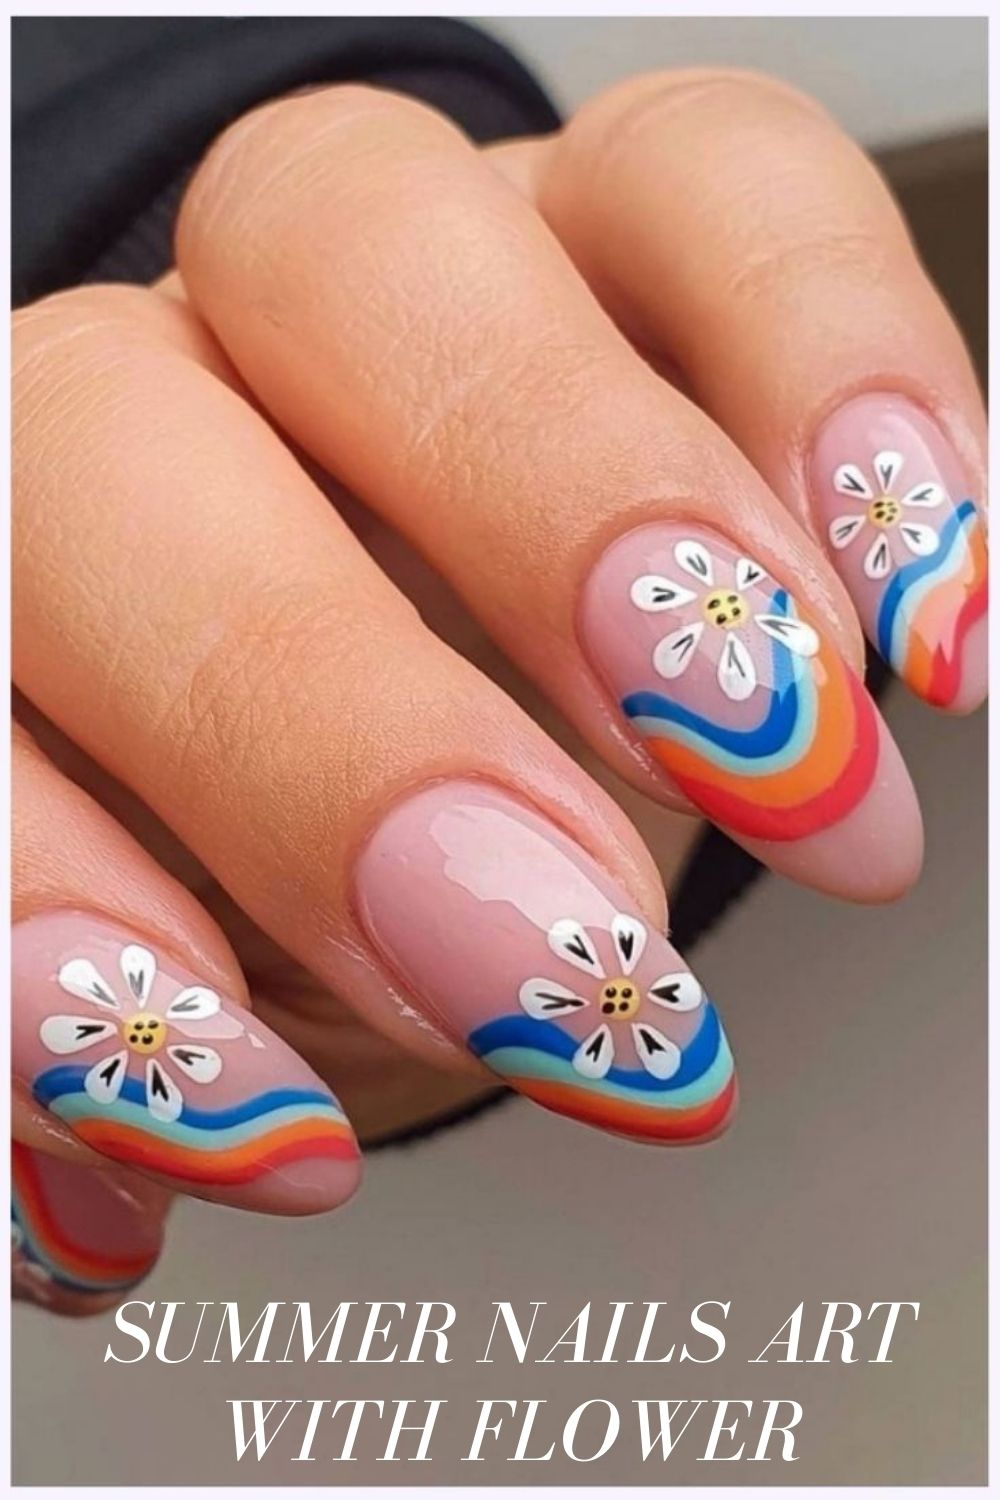 Almond nail design for rainbows and flowers